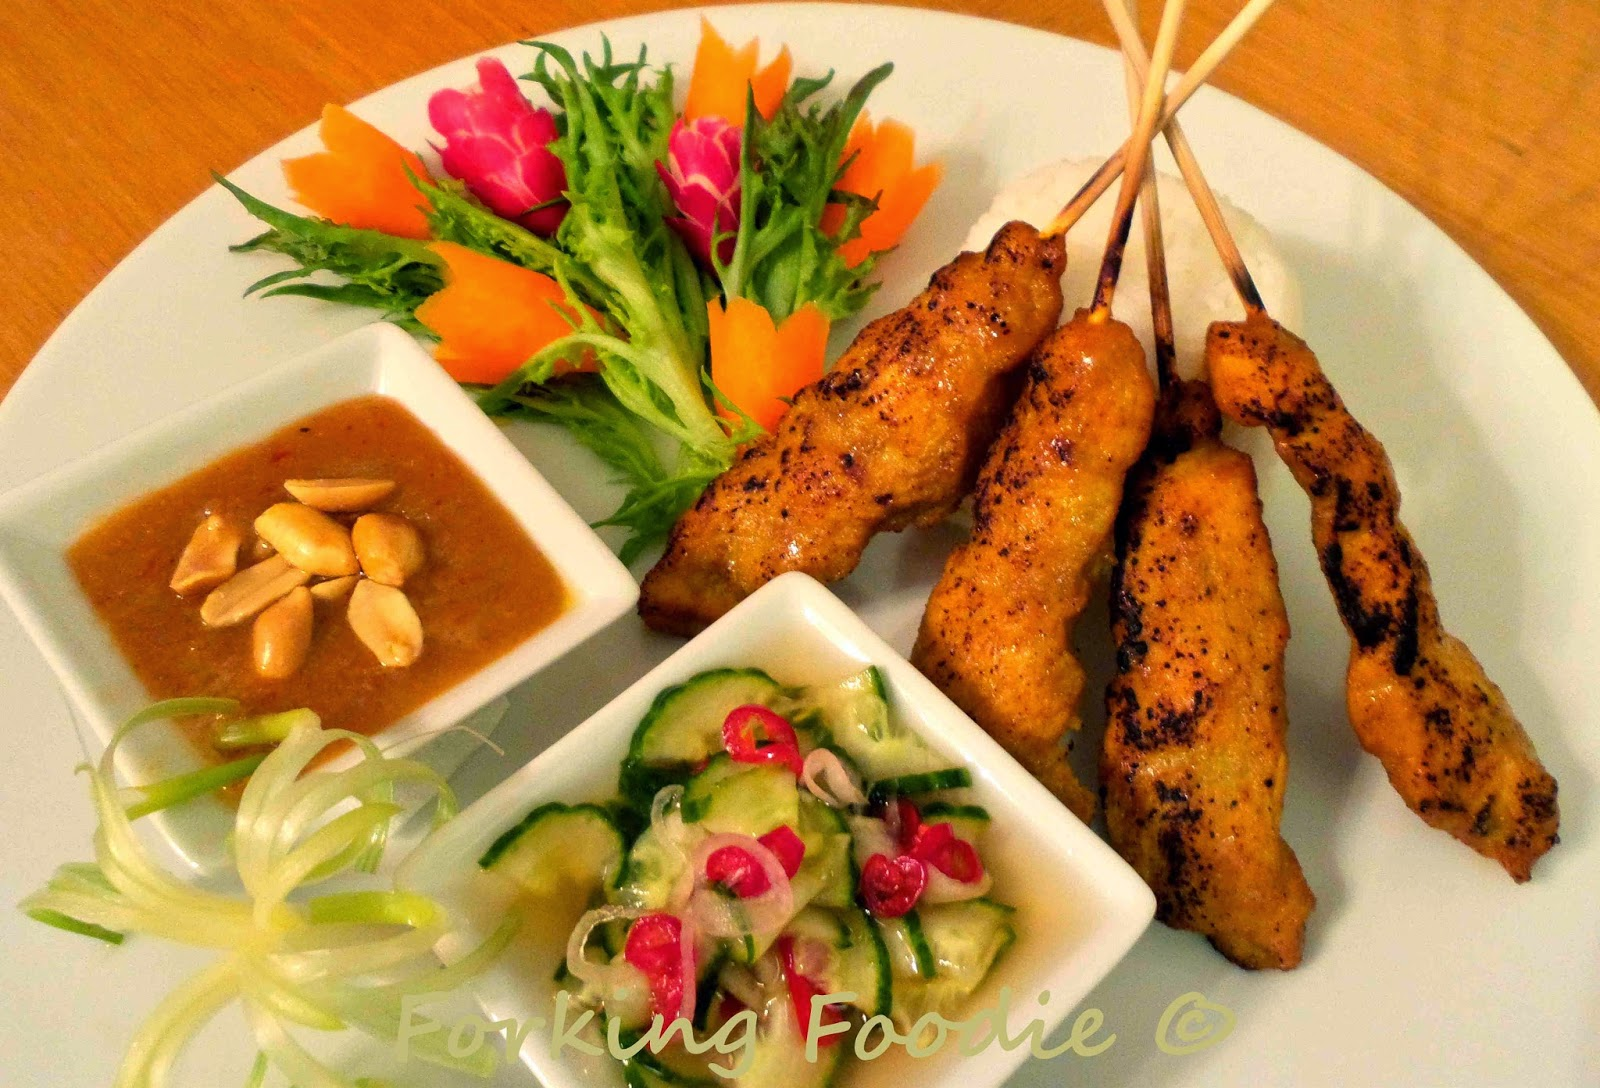 Forking Foodie: Gai Satay (Chicken Satay with Peanut Sauce and ...